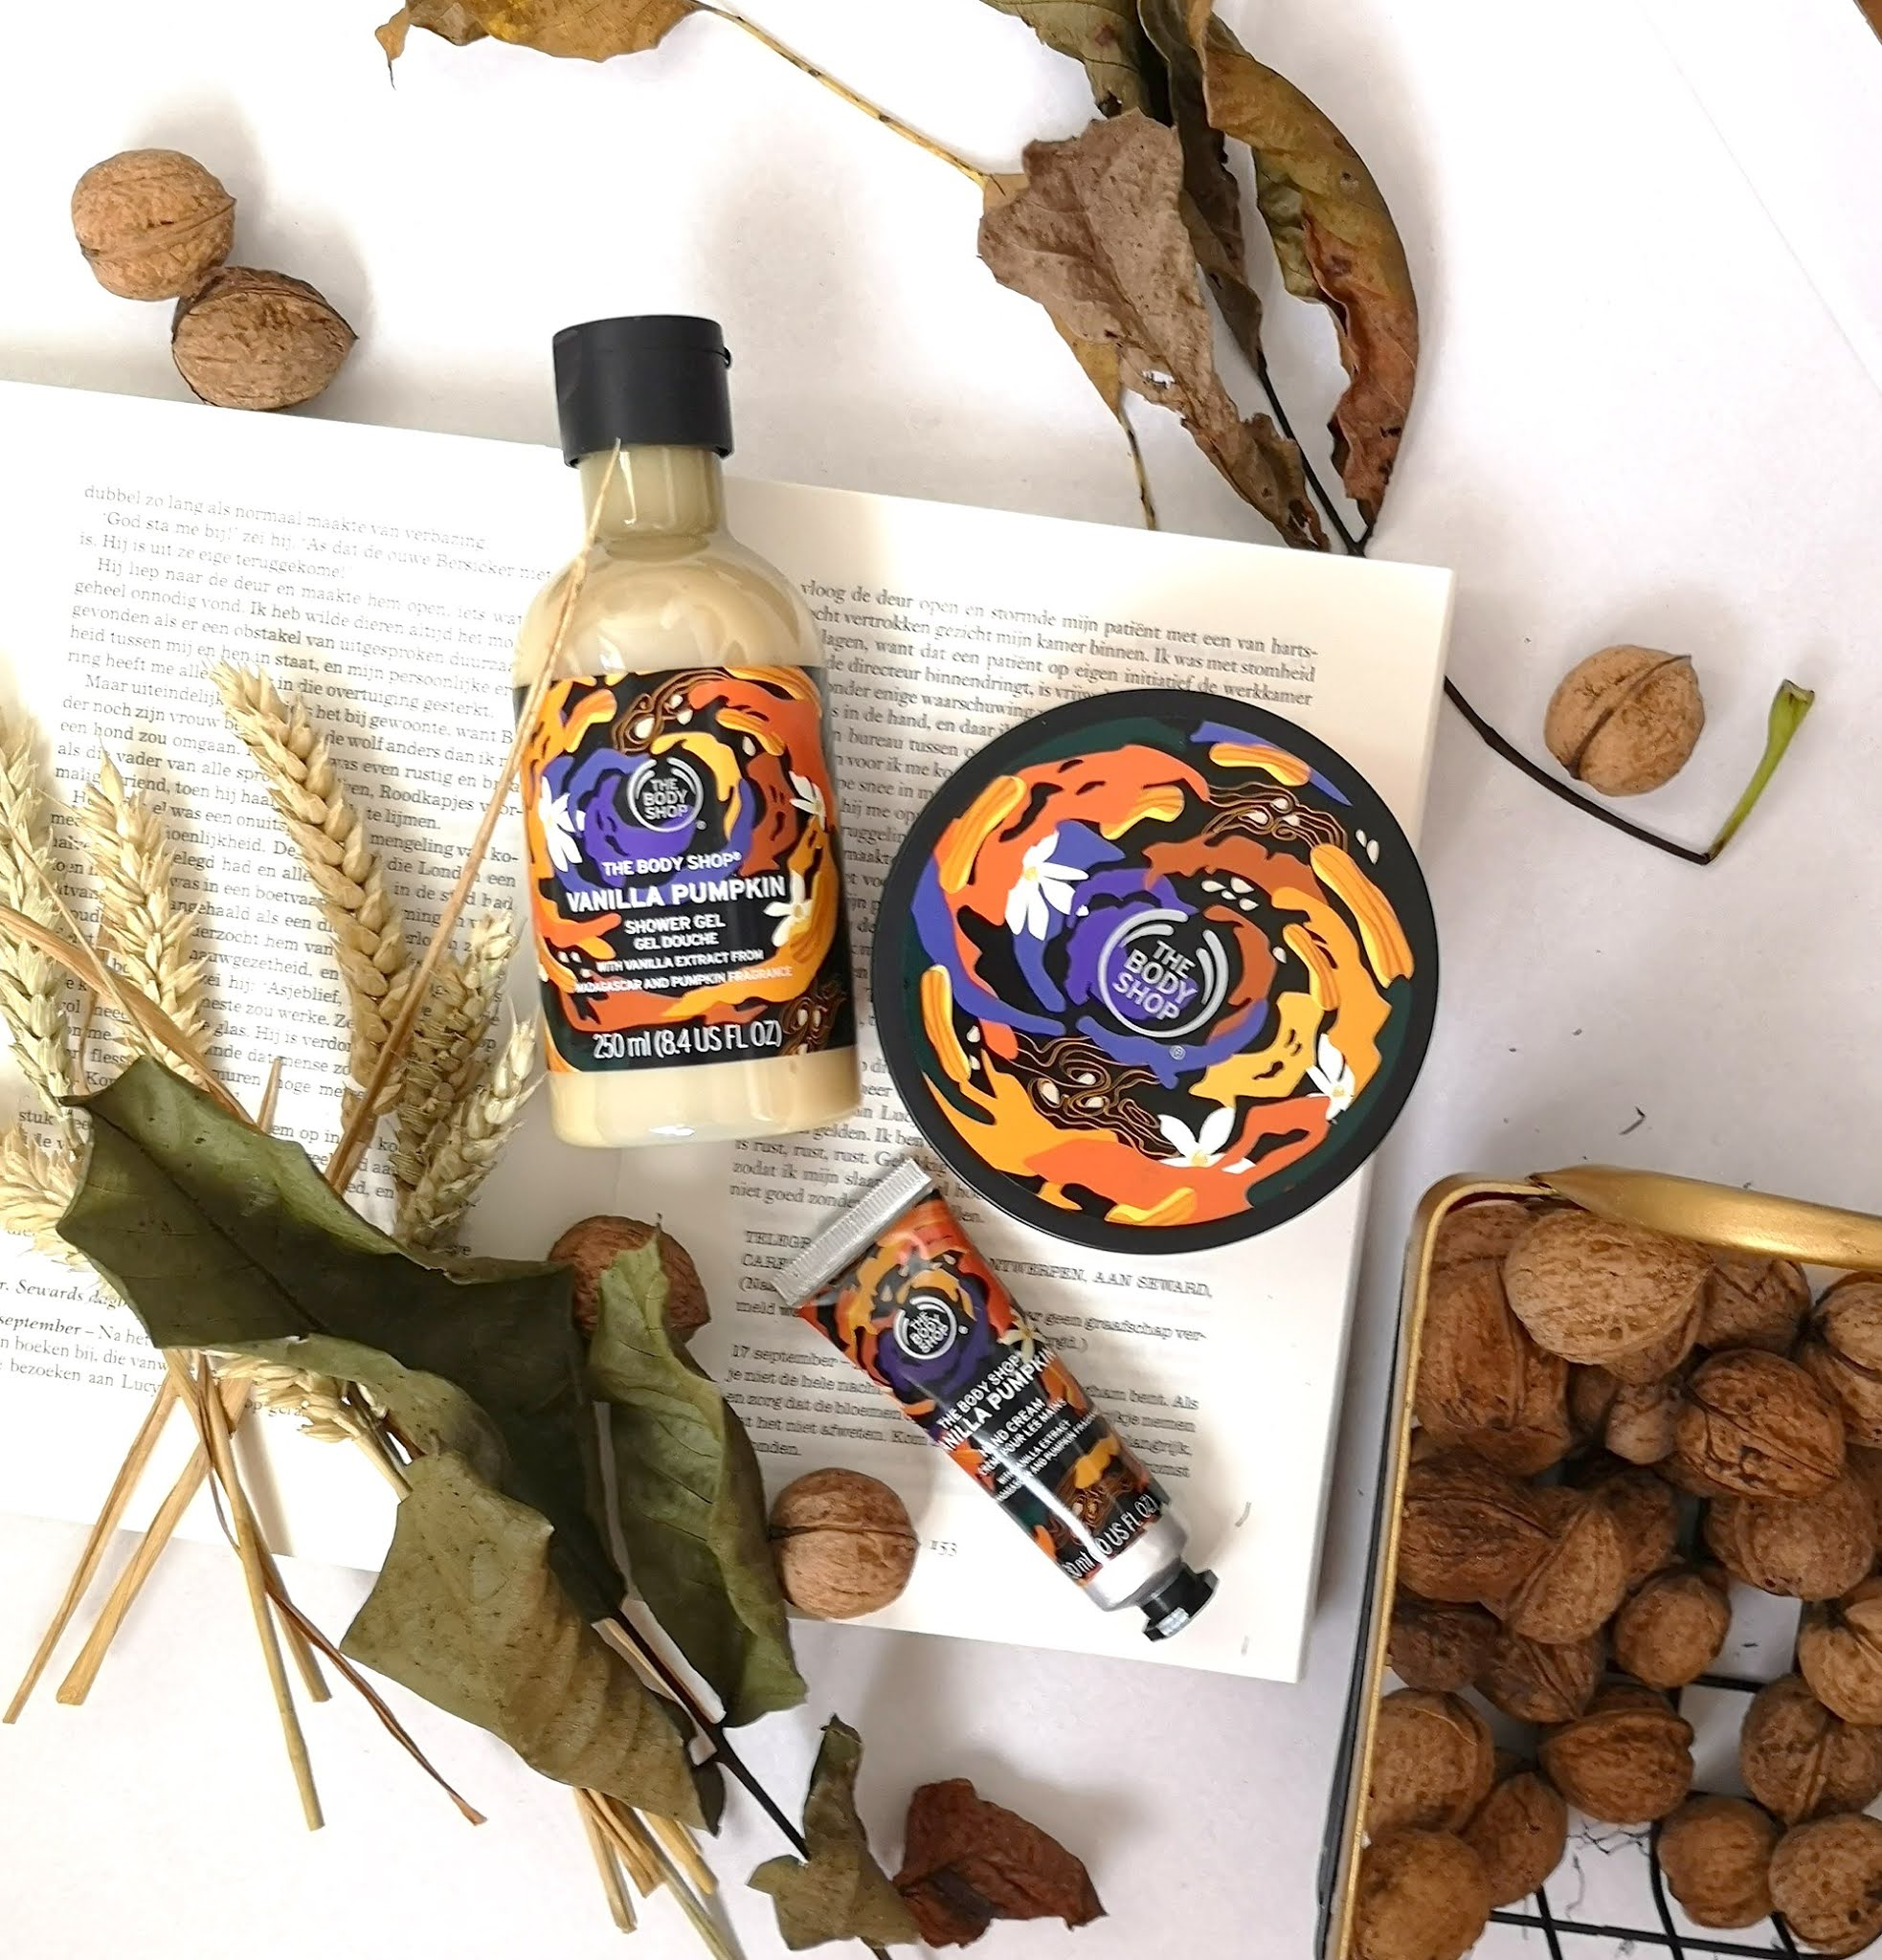 't Is direct herfst met de The body shop vanilla pumpkin lijn